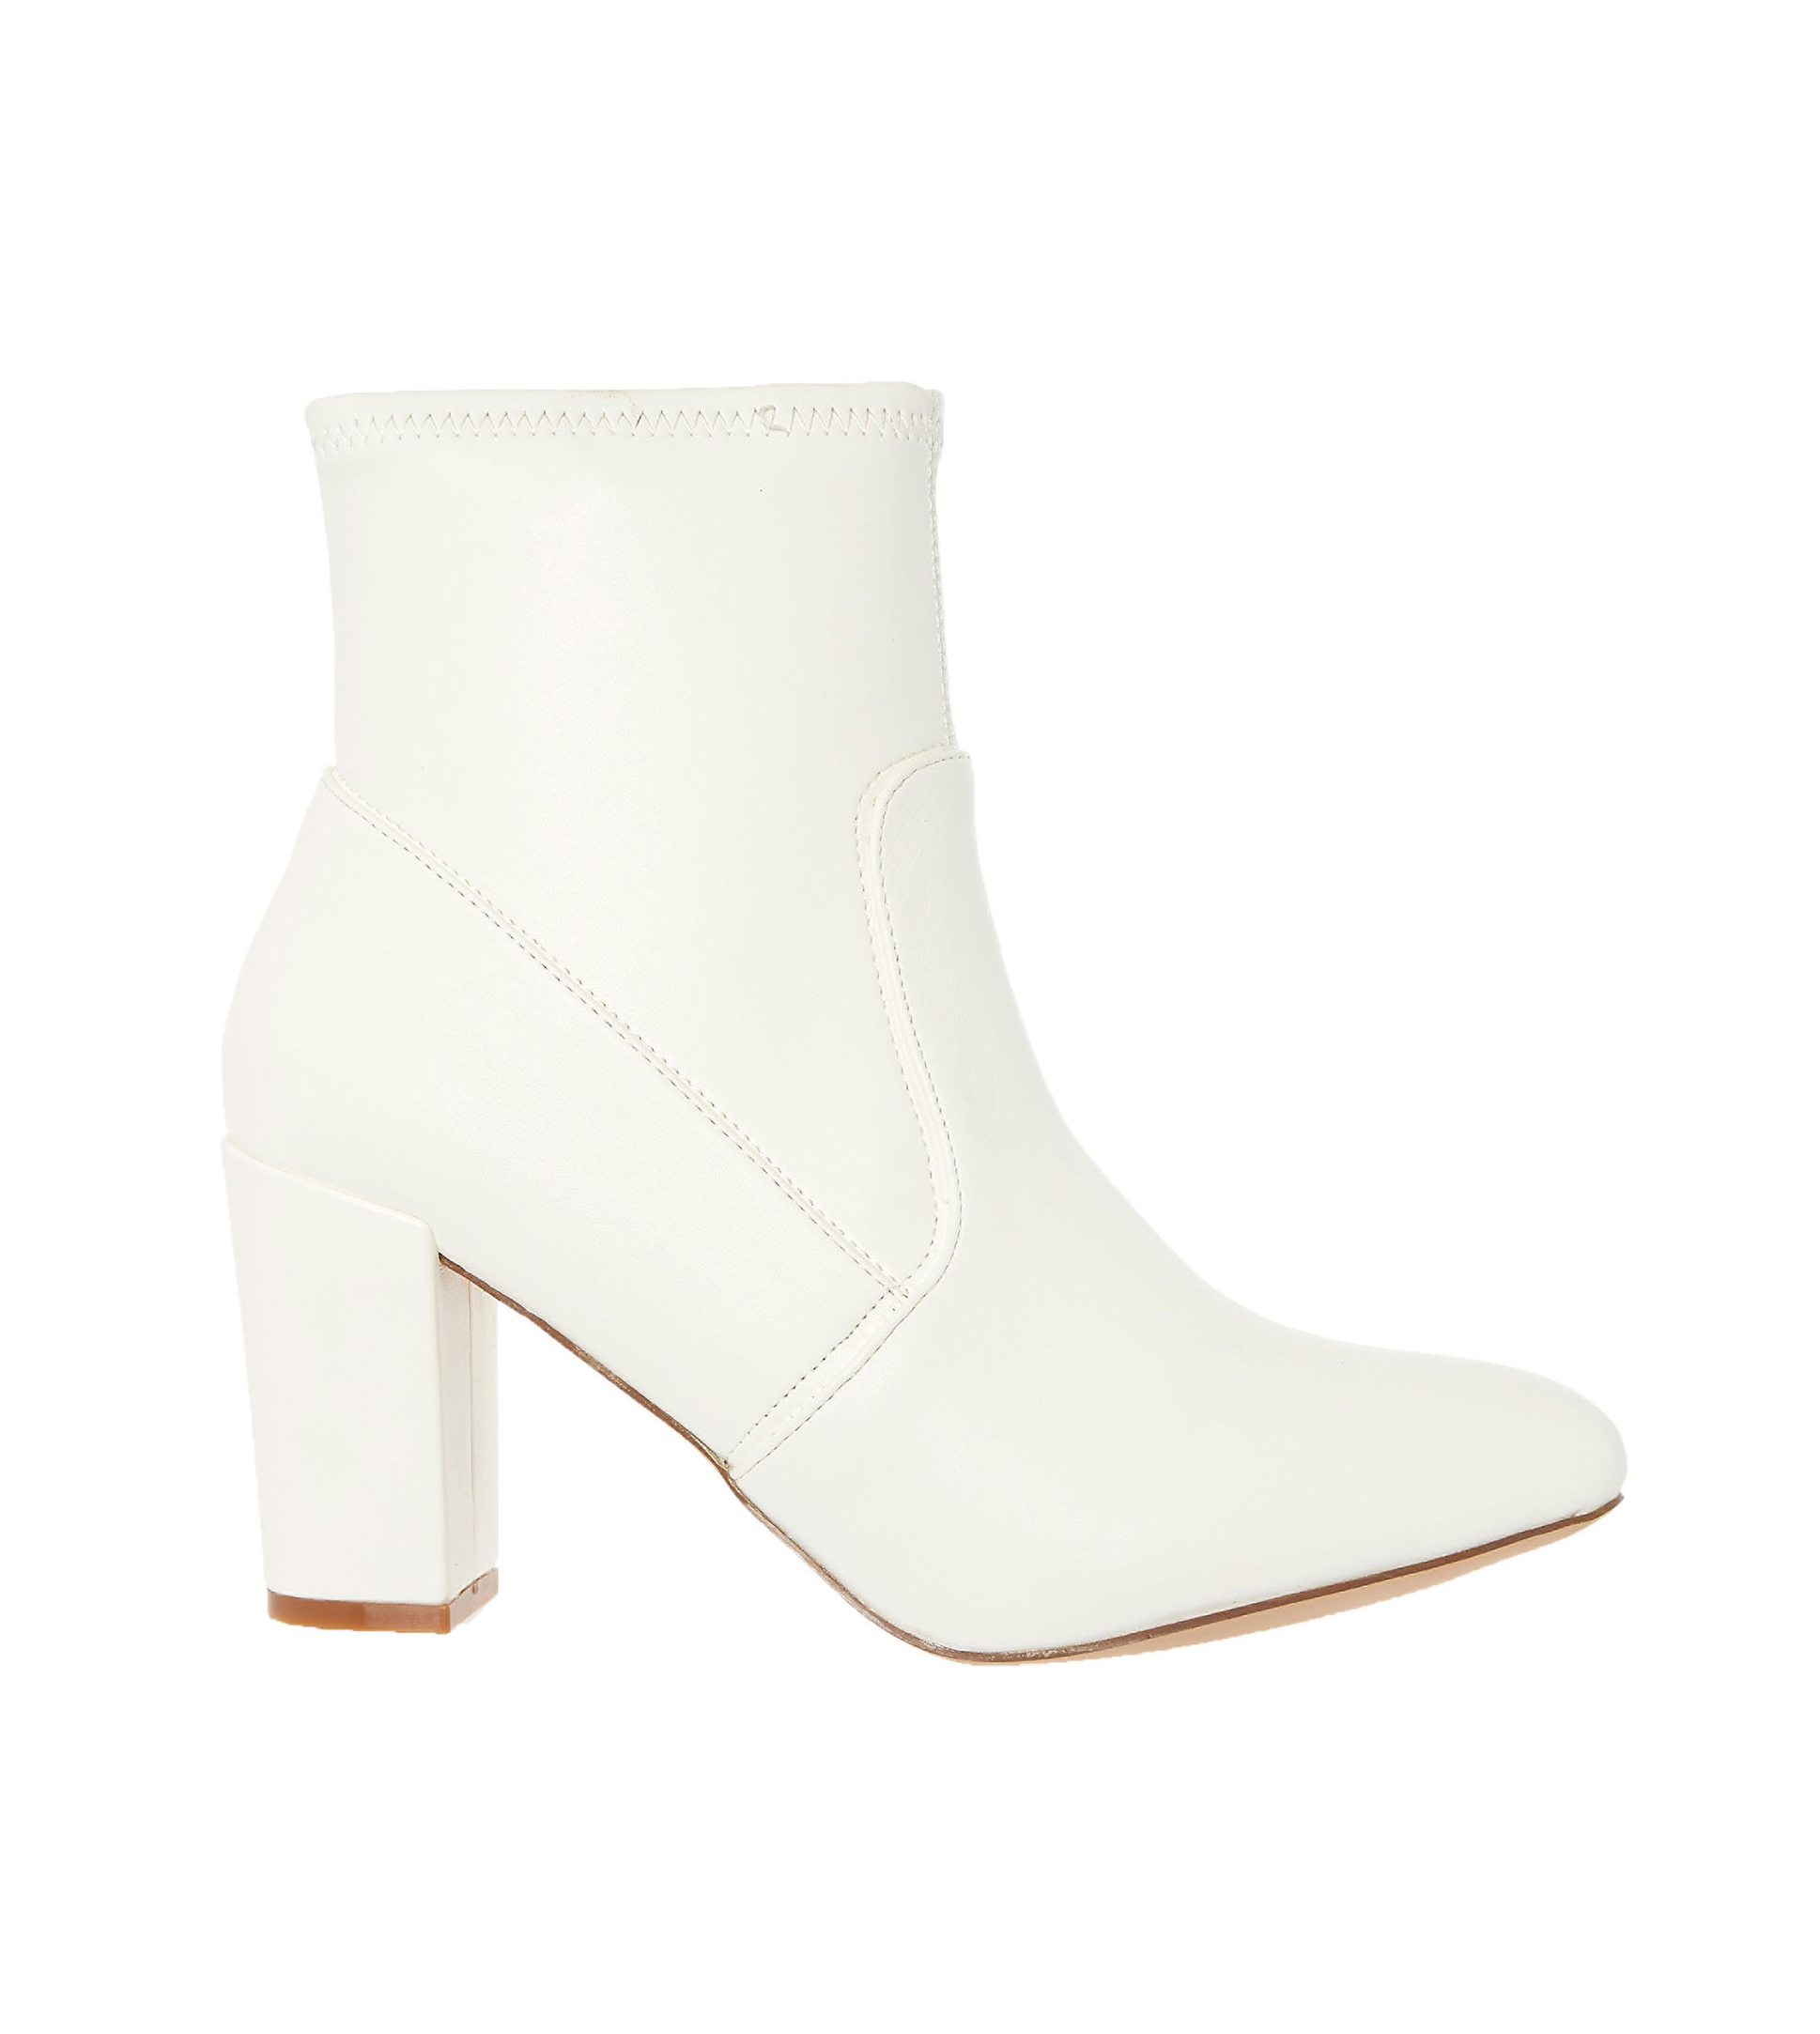 Steve Madden White Stretch Booties